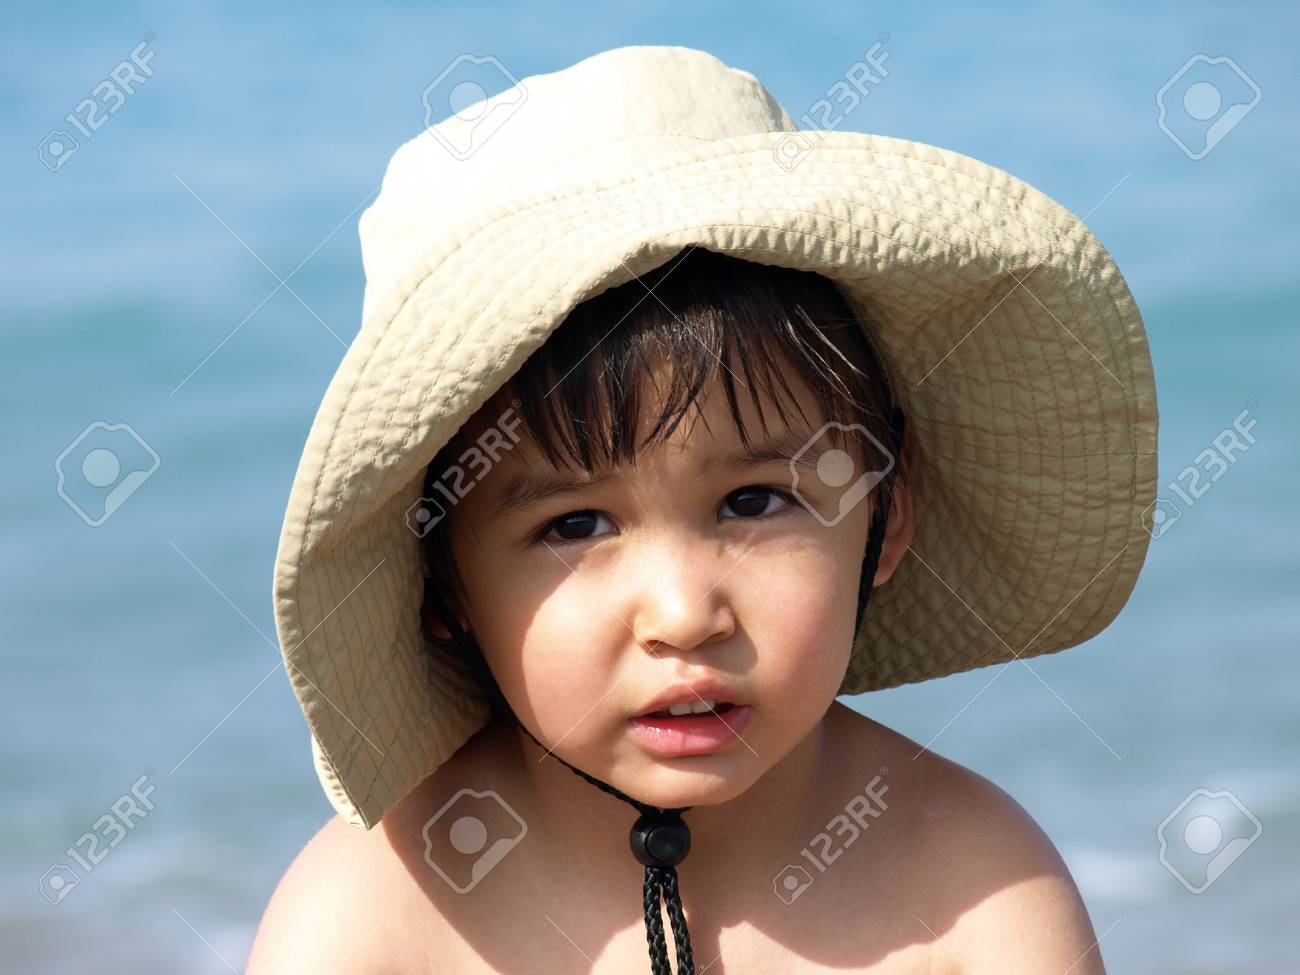 Little boy in hat on the beach Stock Photo - 3231985